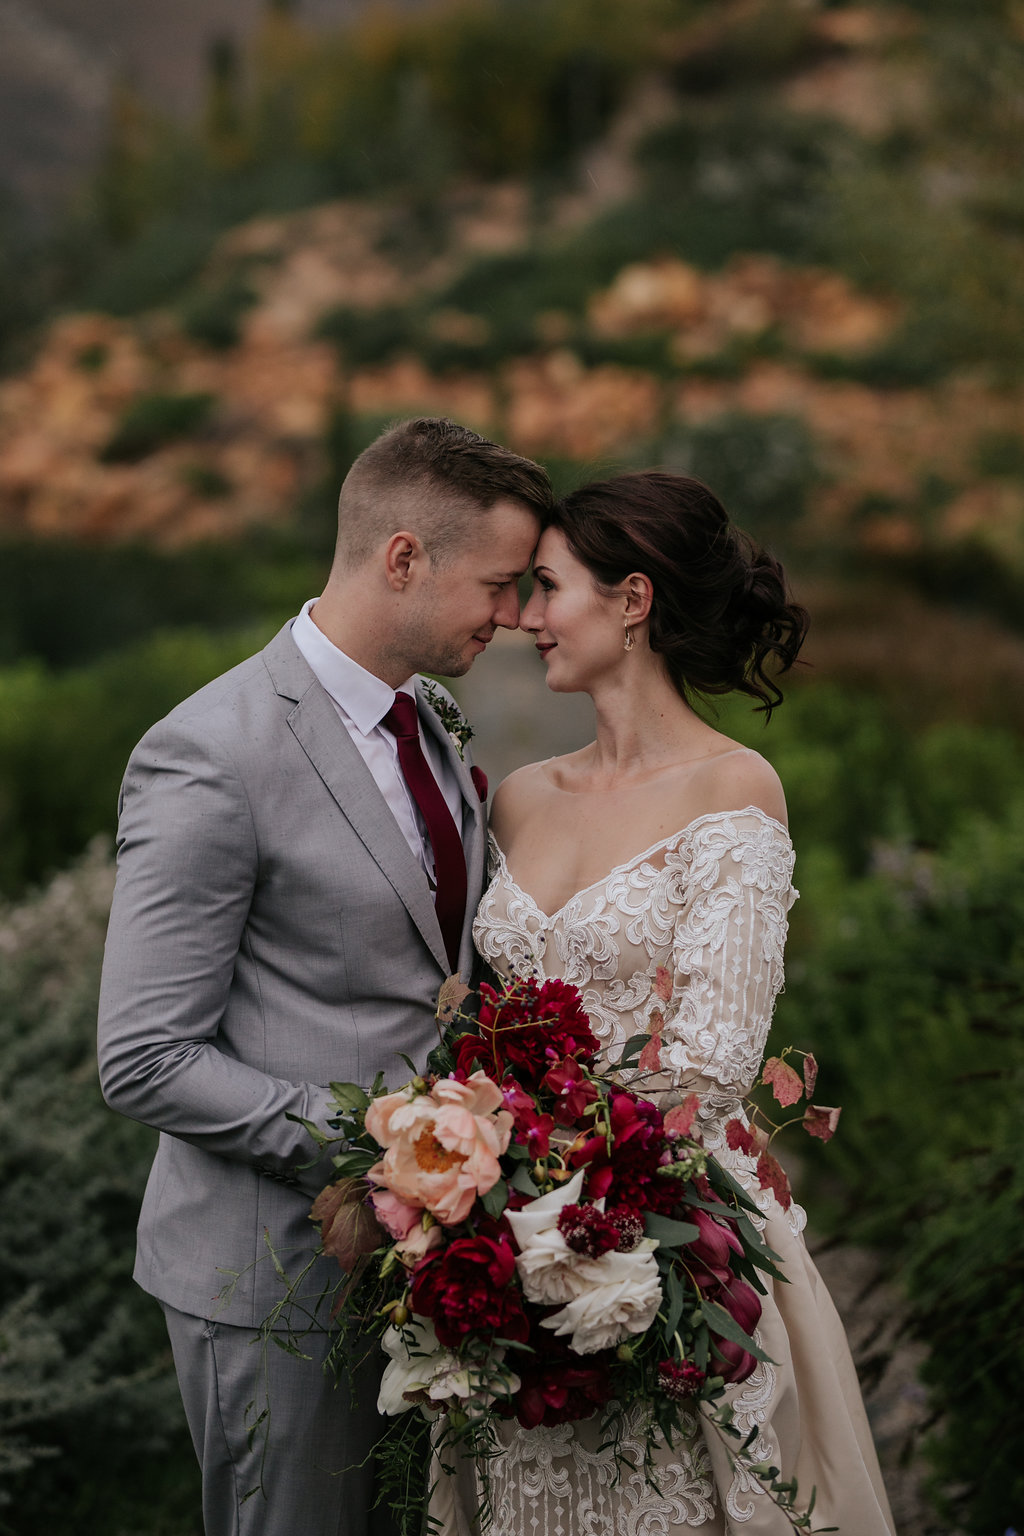 Wildeflower flowers wedding events cape town-36